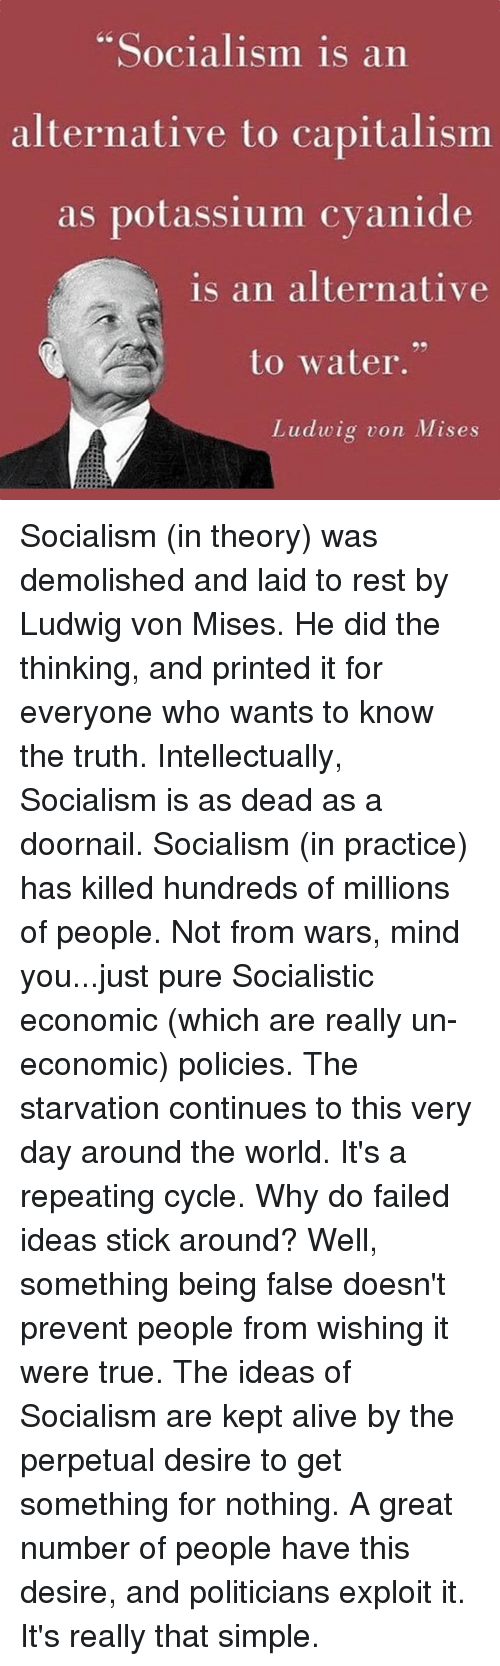 "Alive, Dank, and True: Socialism is an  alternative to capitalismm  as potassium cvanide  is an alternative  to water.""  Ludwig von Mises Socialism (in theory) was demolished and laid to rest by Ludwig von Mises. He did the thinking, and printed it for everyone who wants to know the truth.  Intellectually, Socialism is as dead as a doornail.  Socialism (in practice) has killed hundreds of millions of people. Not from wars, mind you...just pure Socialistic economic (which are really un-economic) policies.  The starvation continues to this very day around the world. It's a repeating cycle.  Why do failed ideas stick around?  Well, something being false doesn't prevent people from wishing it were true.  The ideas of Socialism are kept alive by the perpetual desire to get something for nothing.   A great number of people have this desire, and politicians exploit it.  It's really that simple."